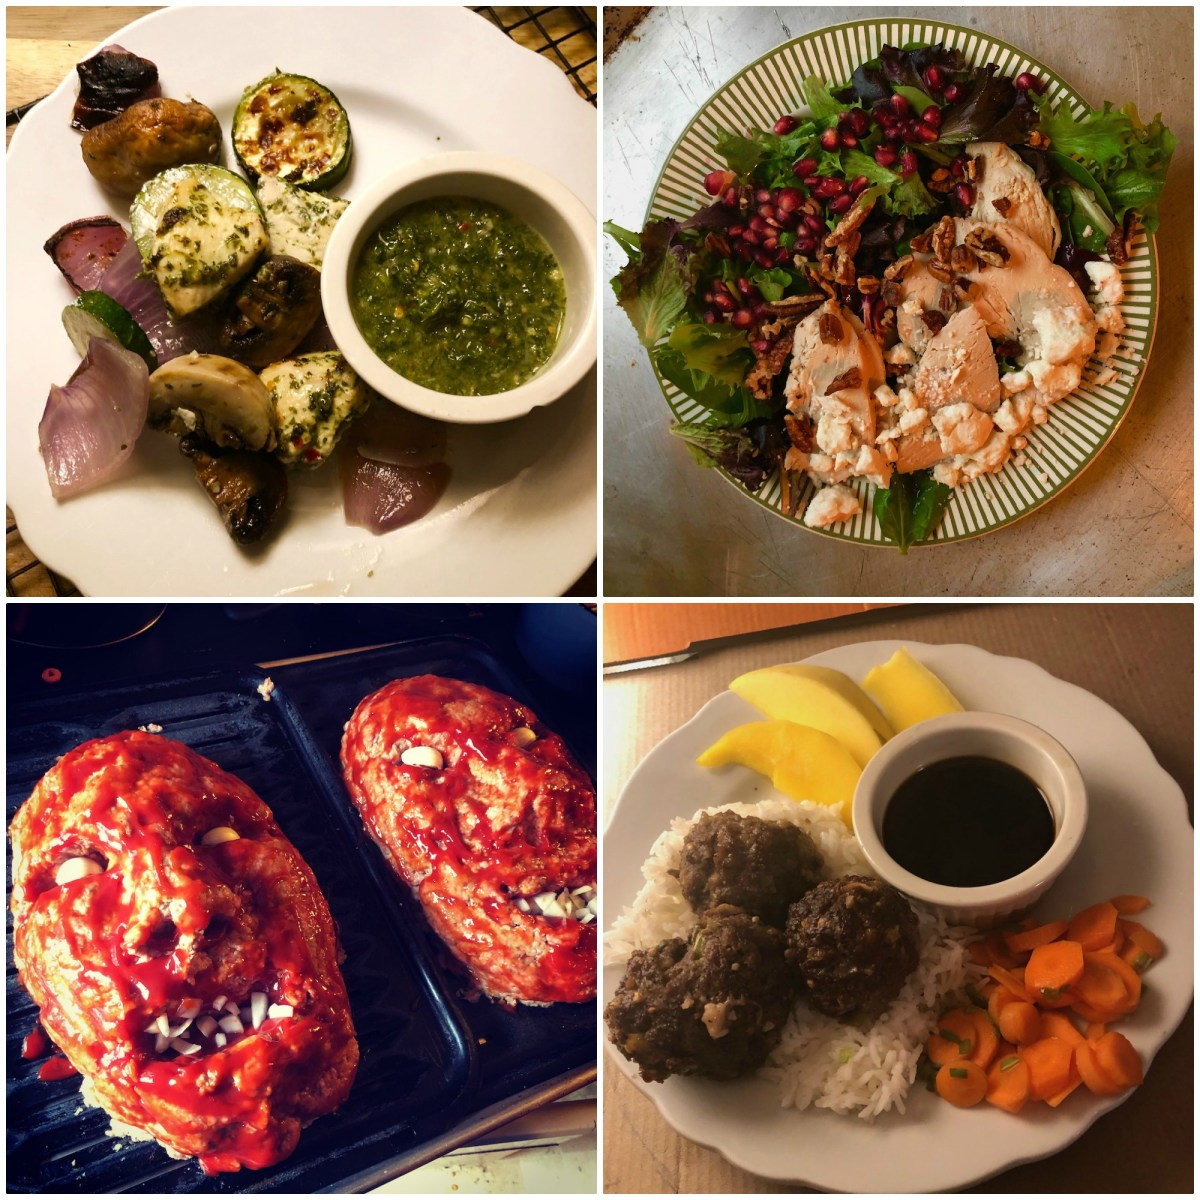 What's for supper? Vol. 191: Chimichurri! Korean meatballs! Pomegranate salad! Challah! And more